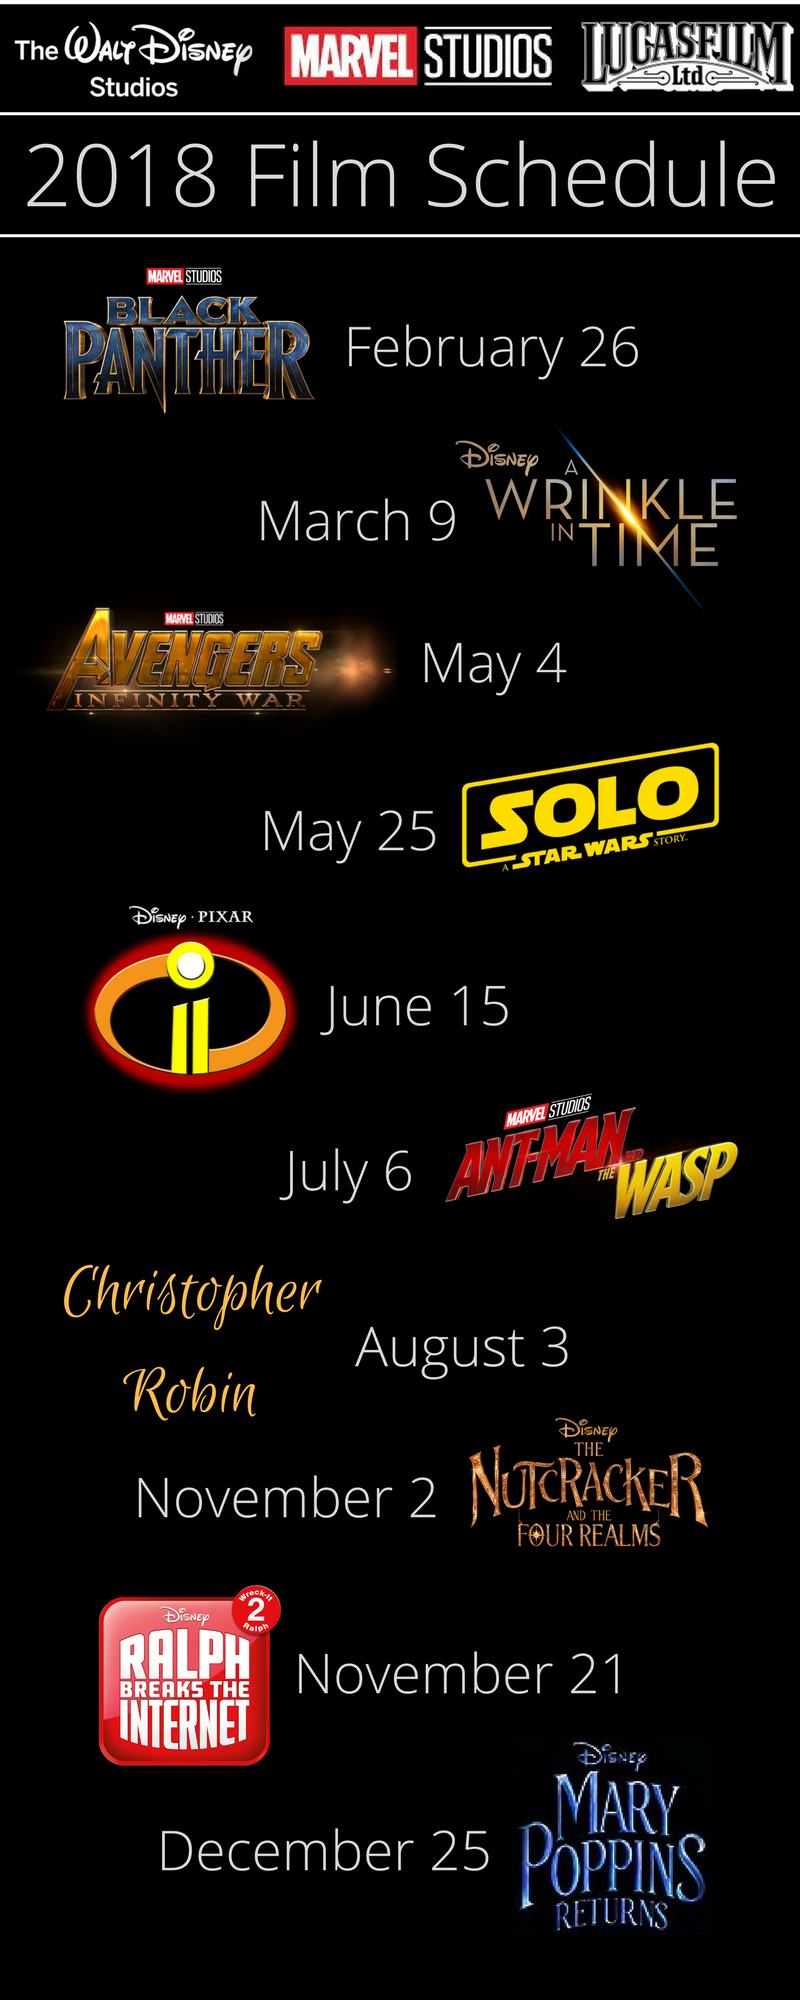 Get the full film schedule of films coming from Walt